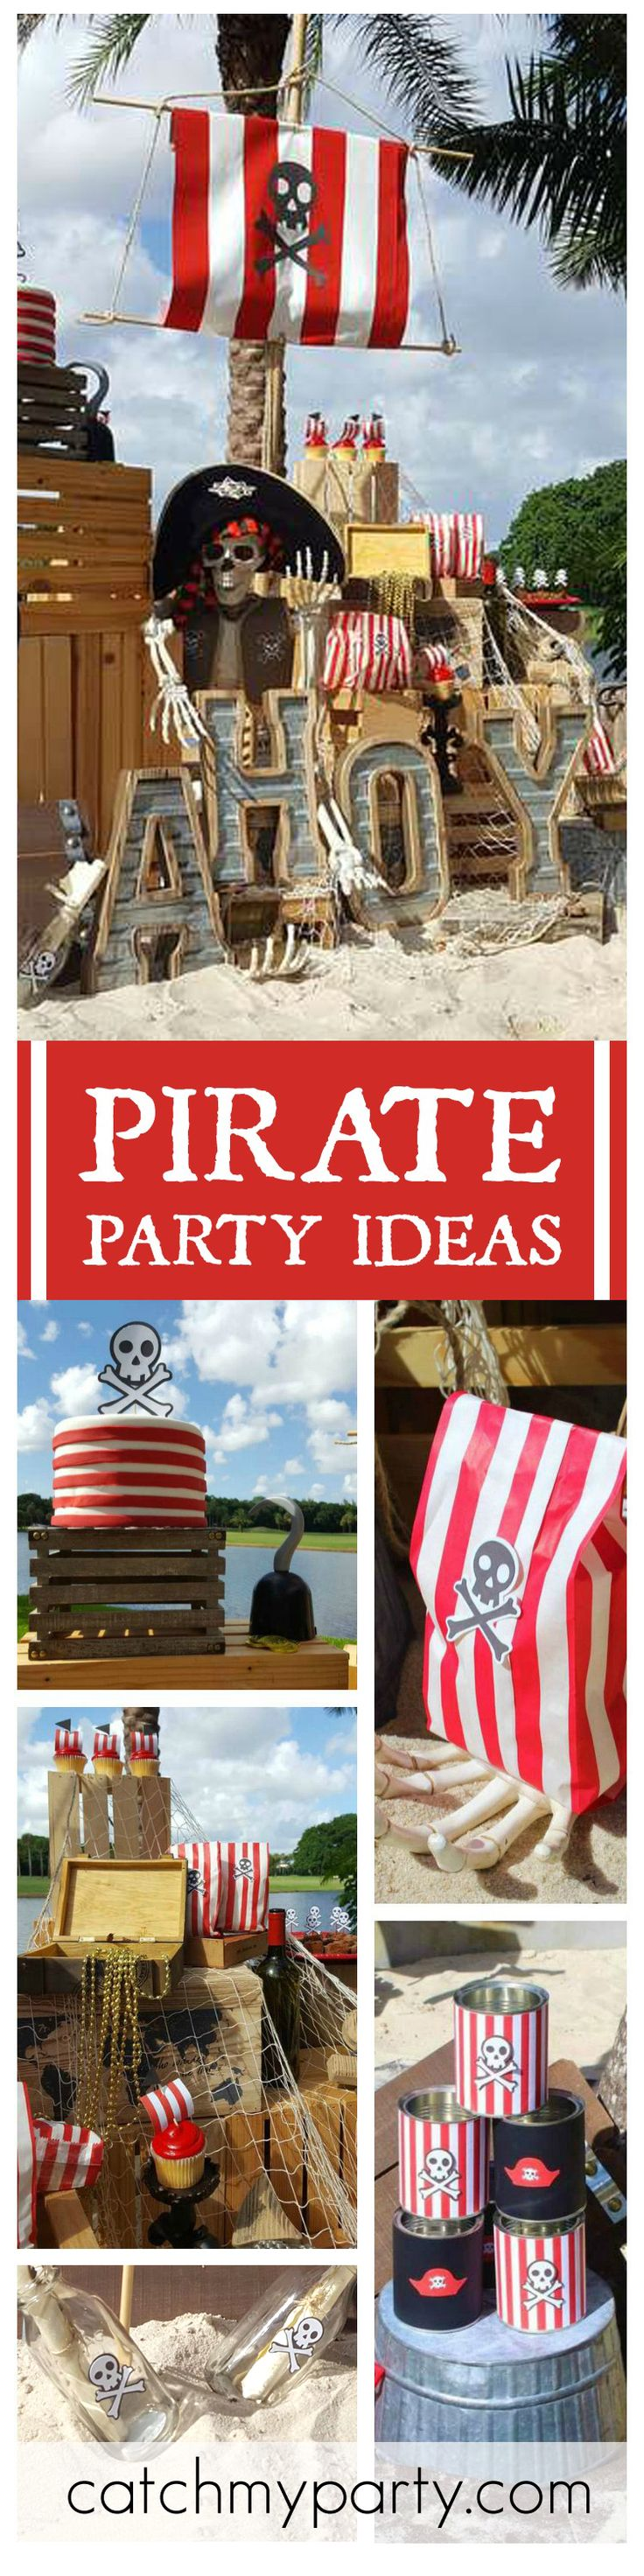 Best 20+ Summer party themes ideas on Pinterest | Garden parties ...